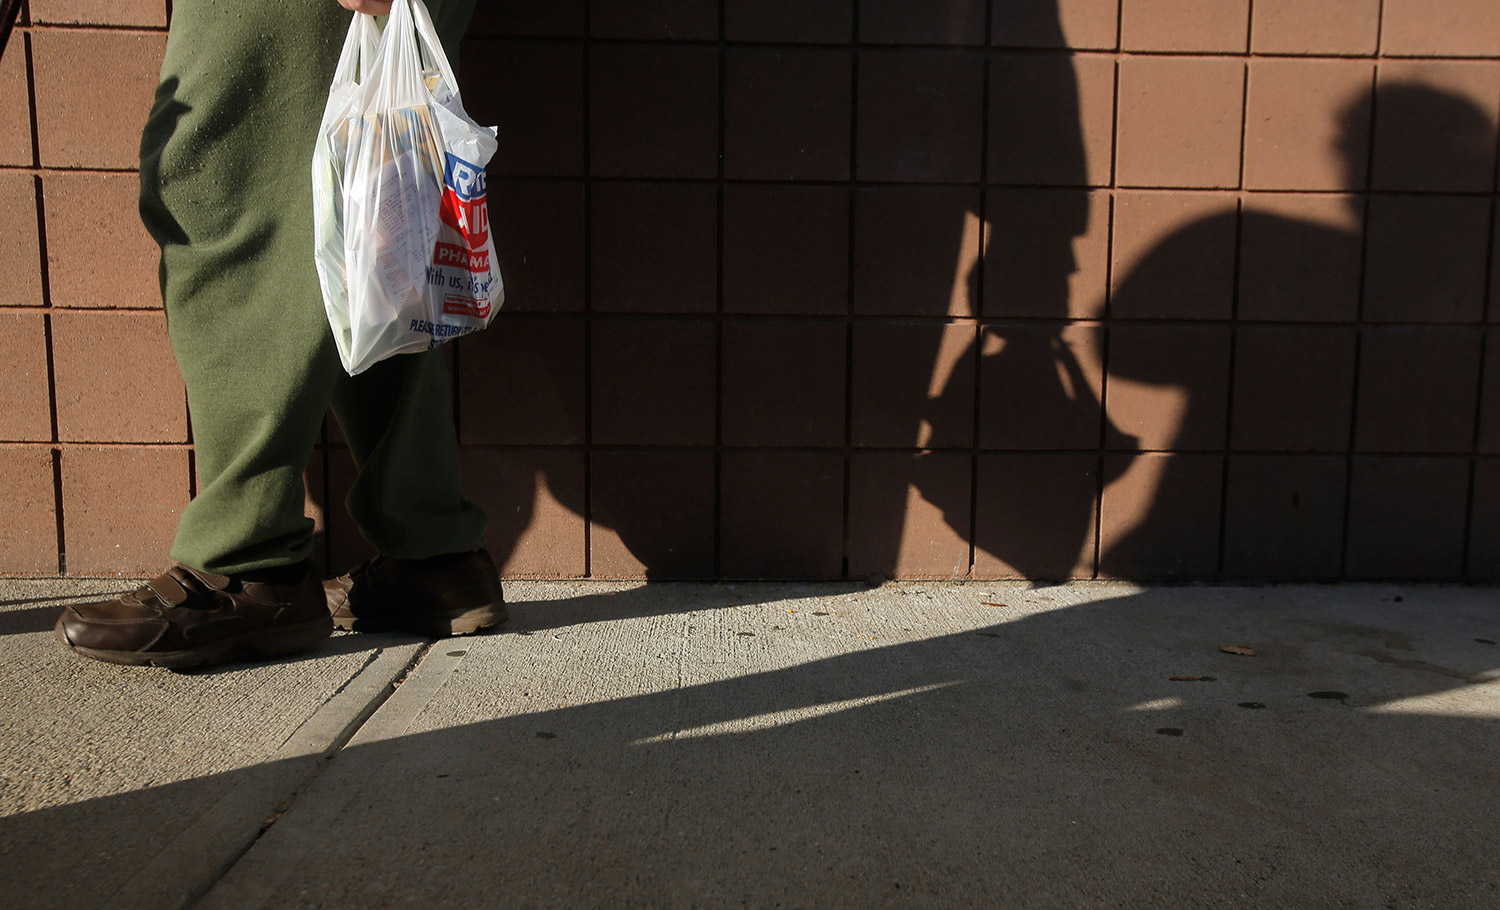 A man carrying a plastic bag out of Rite Aid in York casts a shadow on the wall of the pharmacy on Wednesday afternoon.